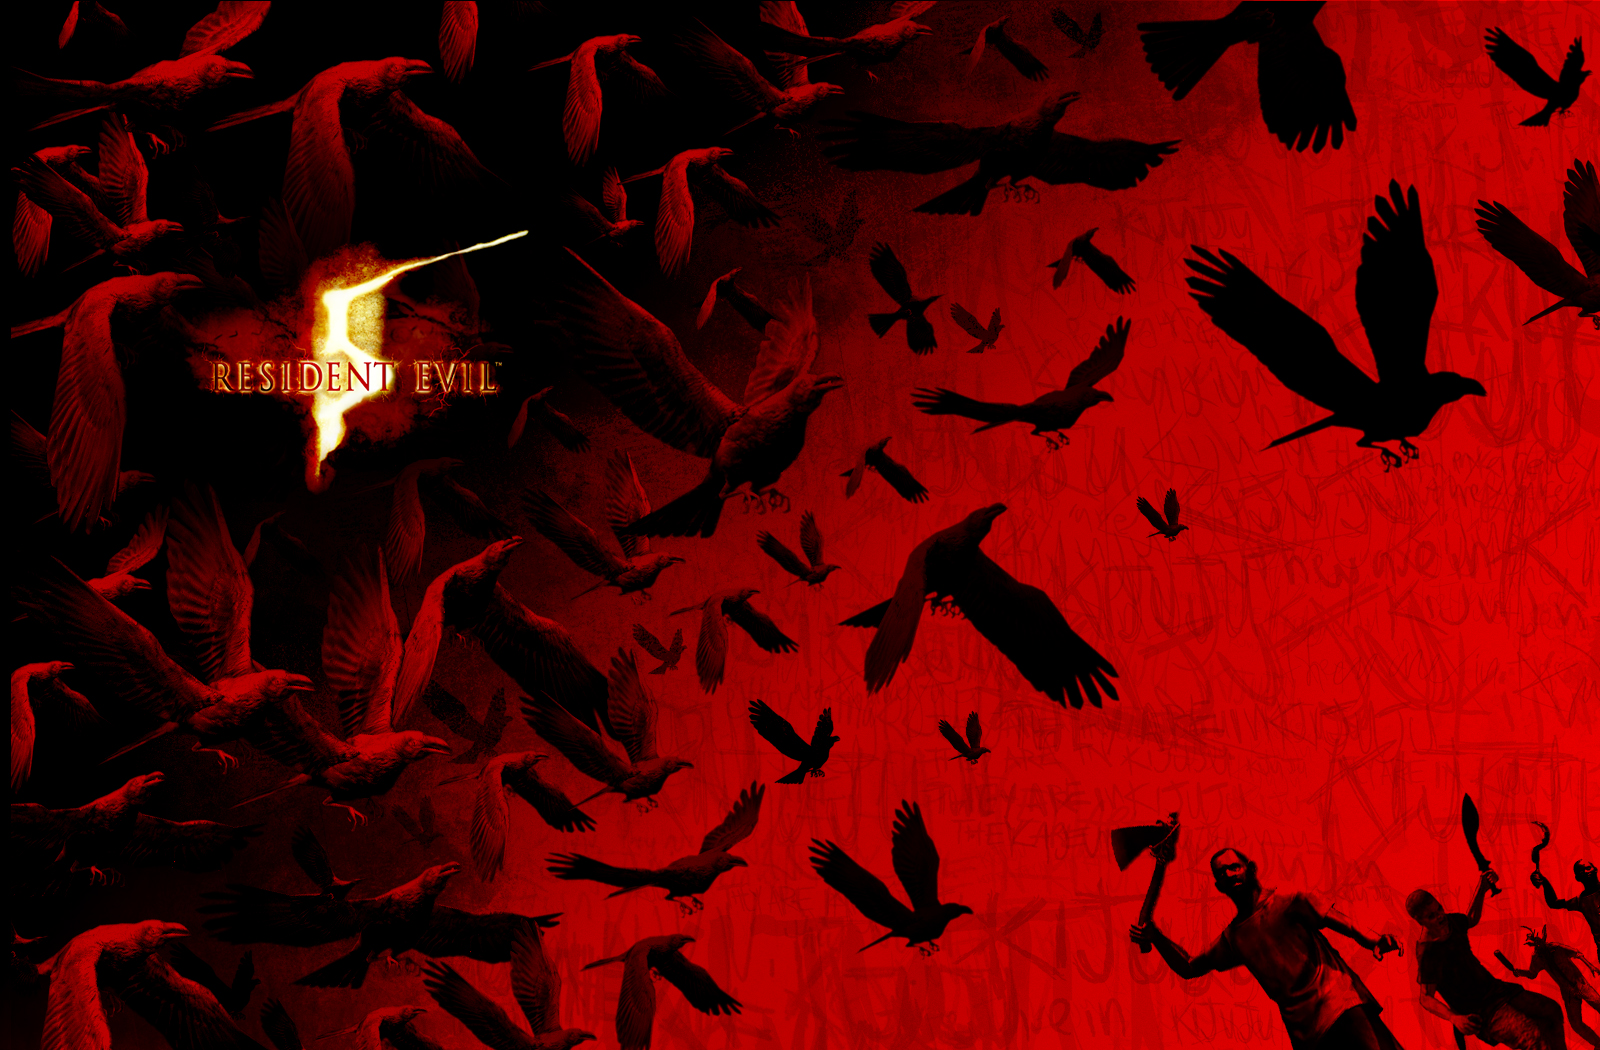 Resident evil 5 wallpaper and background image 1600x1050 - Wallpaper resident evil 5 ...